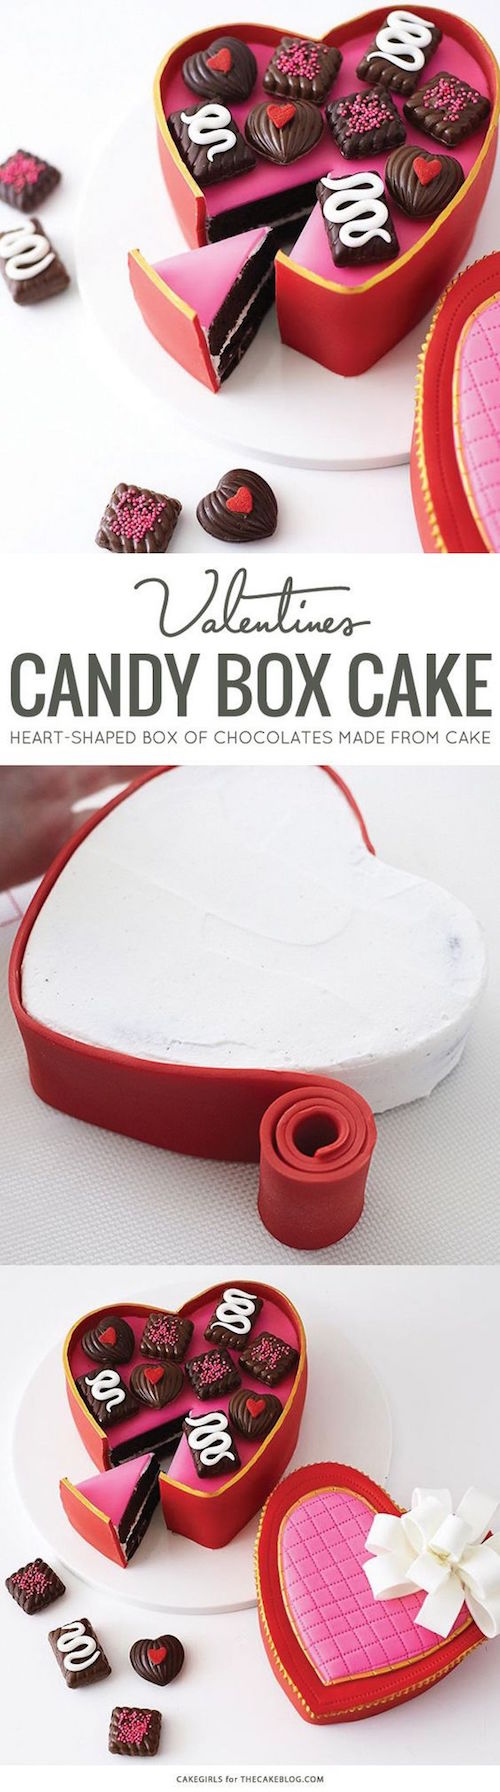 Romantic Valentine's heart candy box cake! And the recipe on the blog!